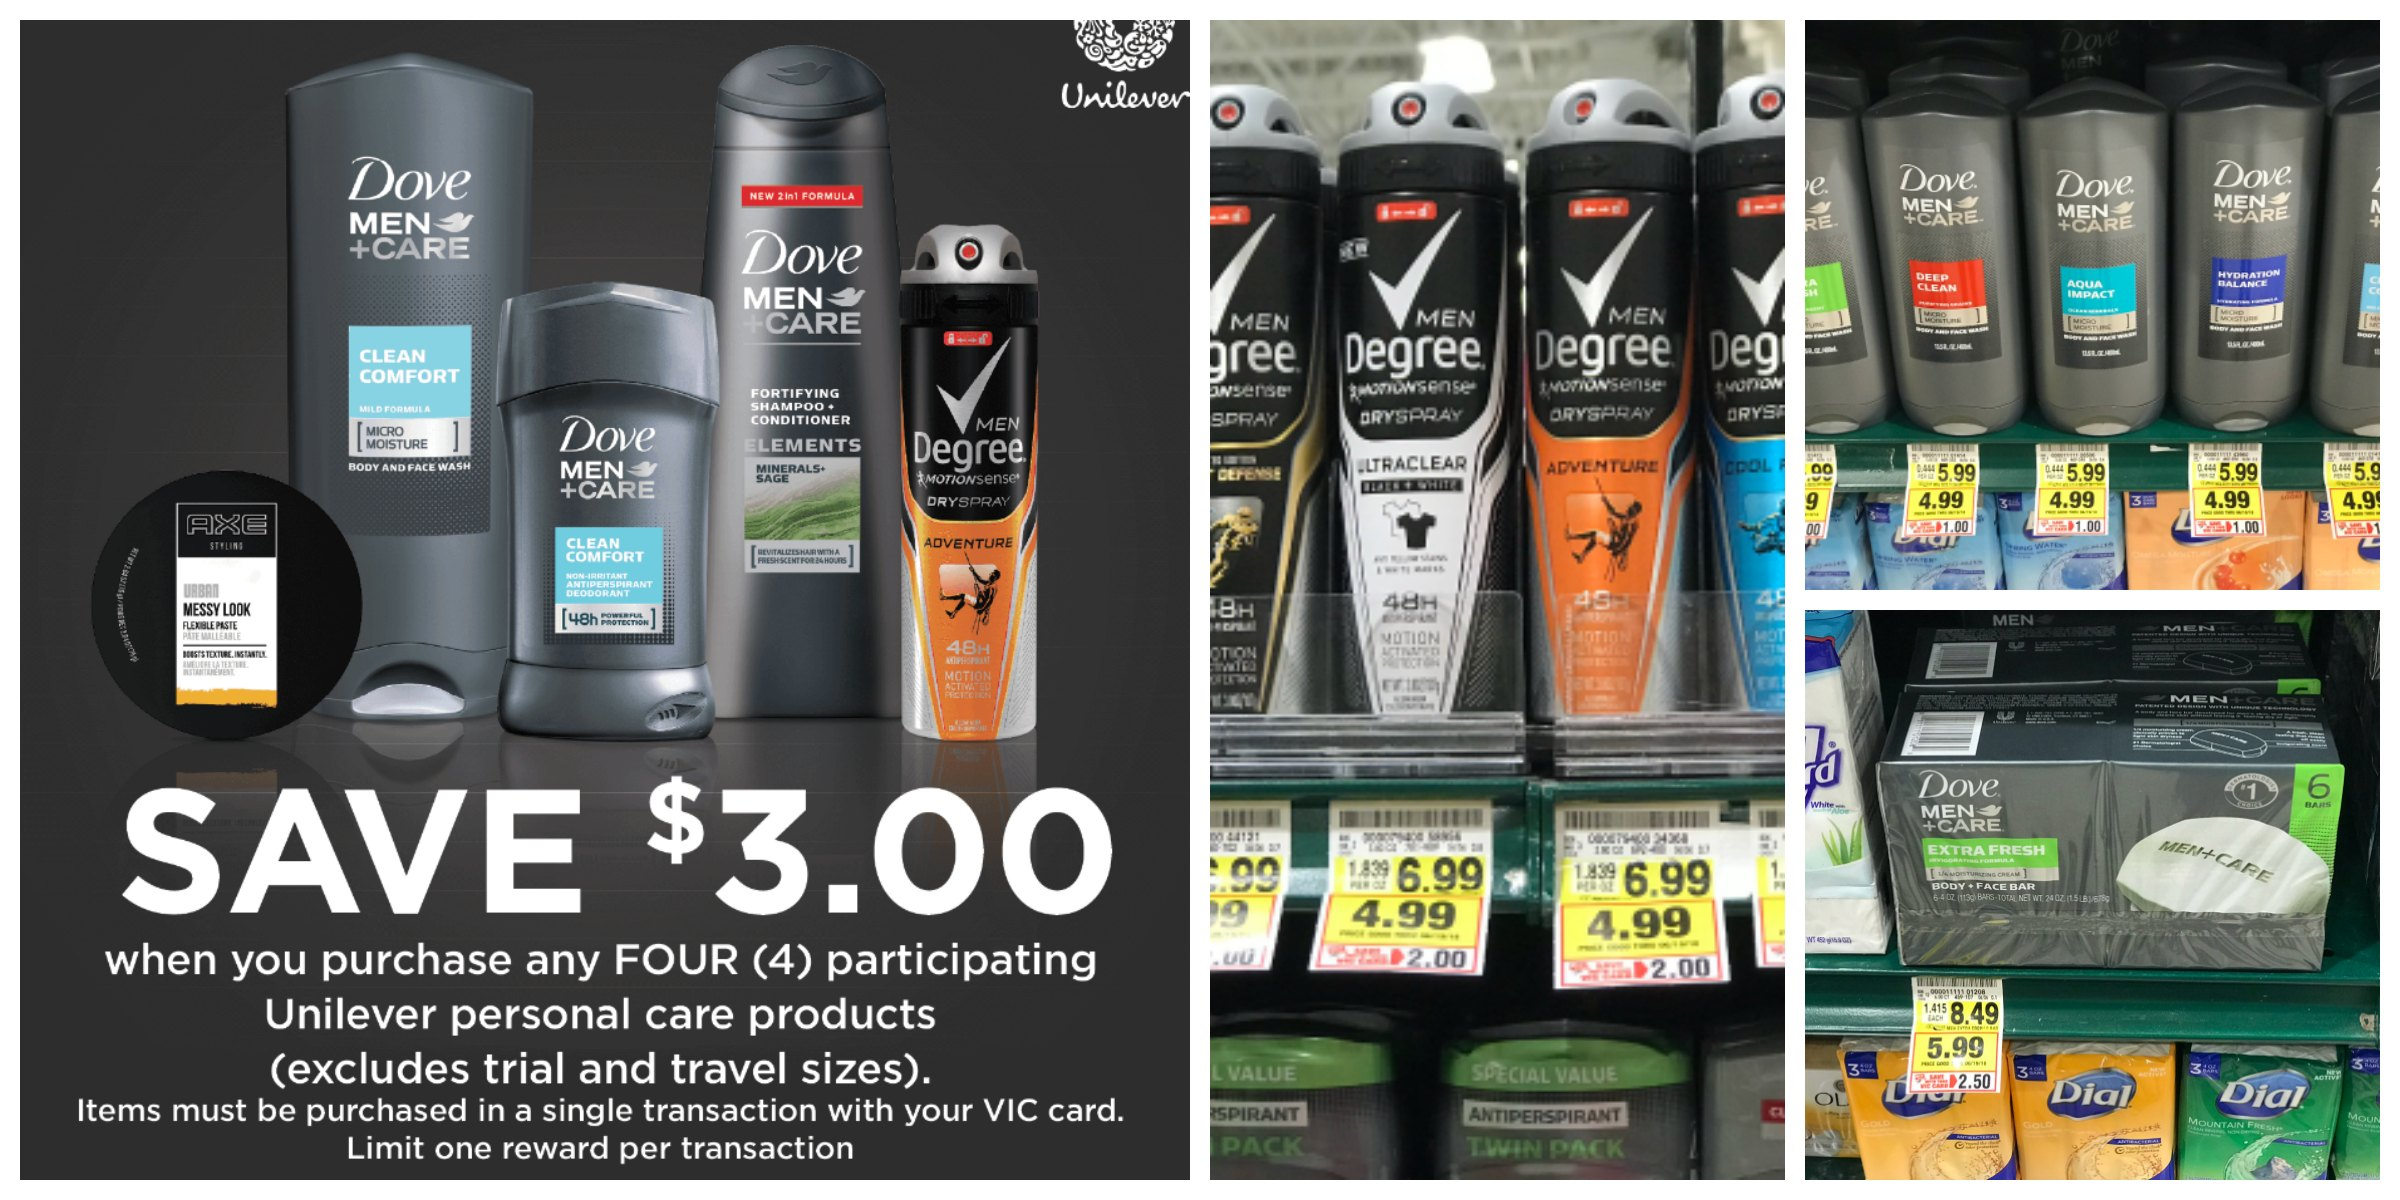 Men S Care Unilever Promotion Buy 4 Save 3 Instantly The Harris